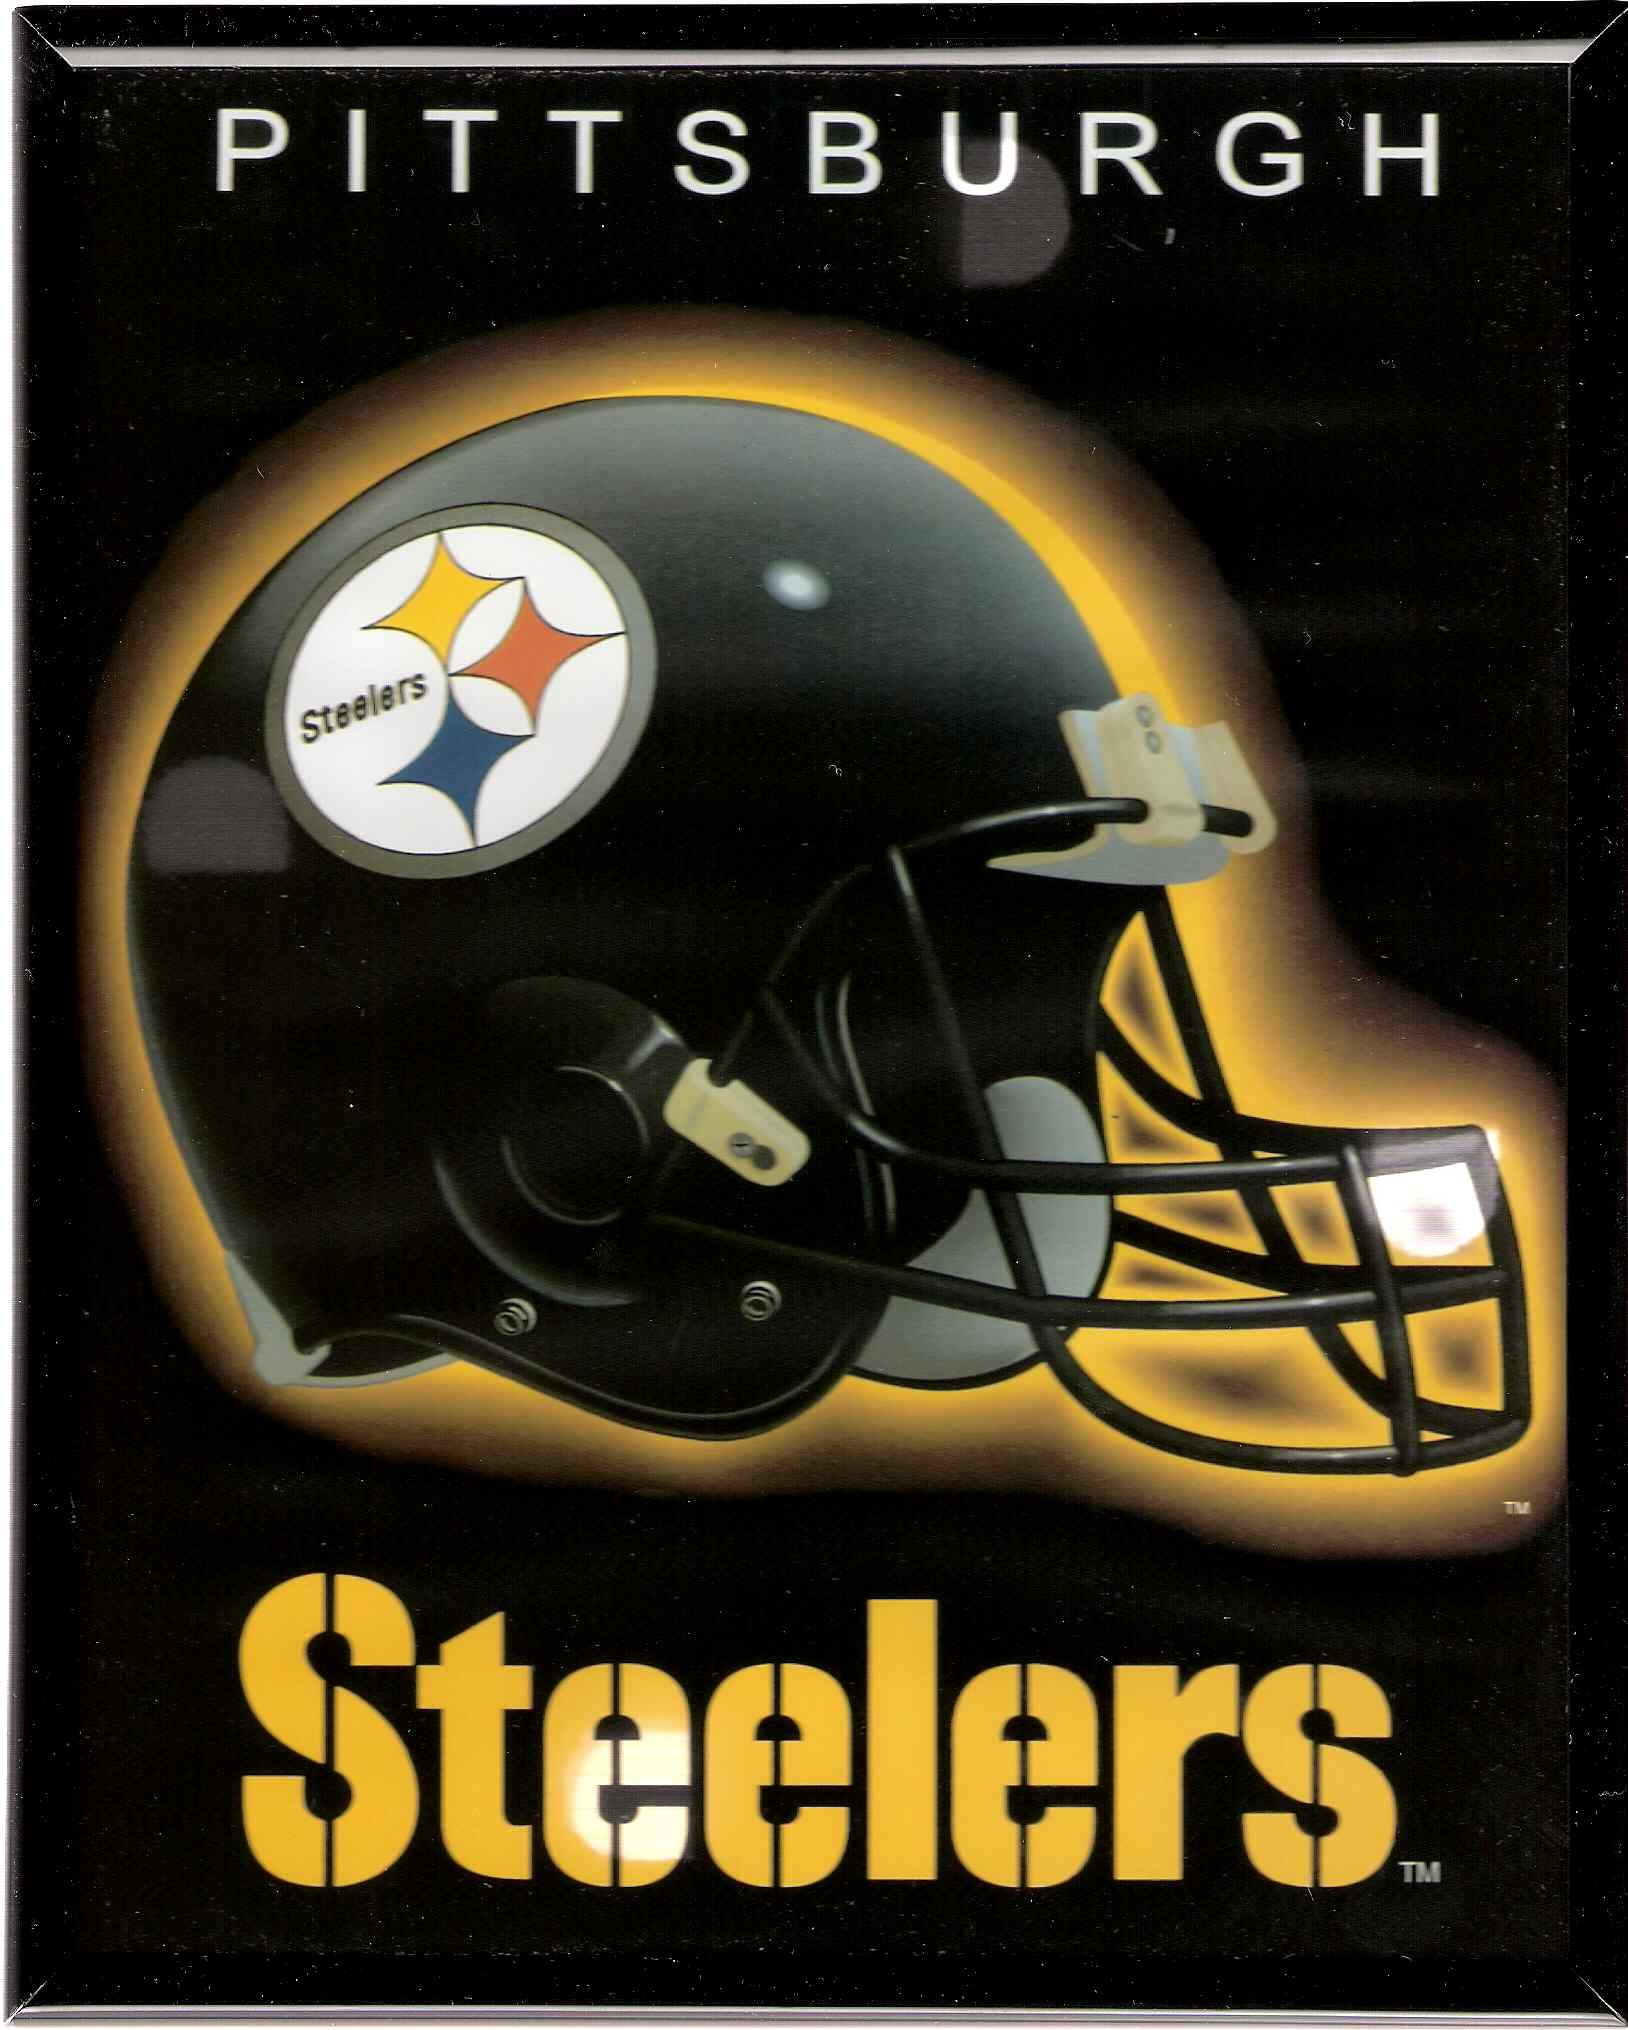 … pittsburgh steelers wallpapers wallpaper cave …